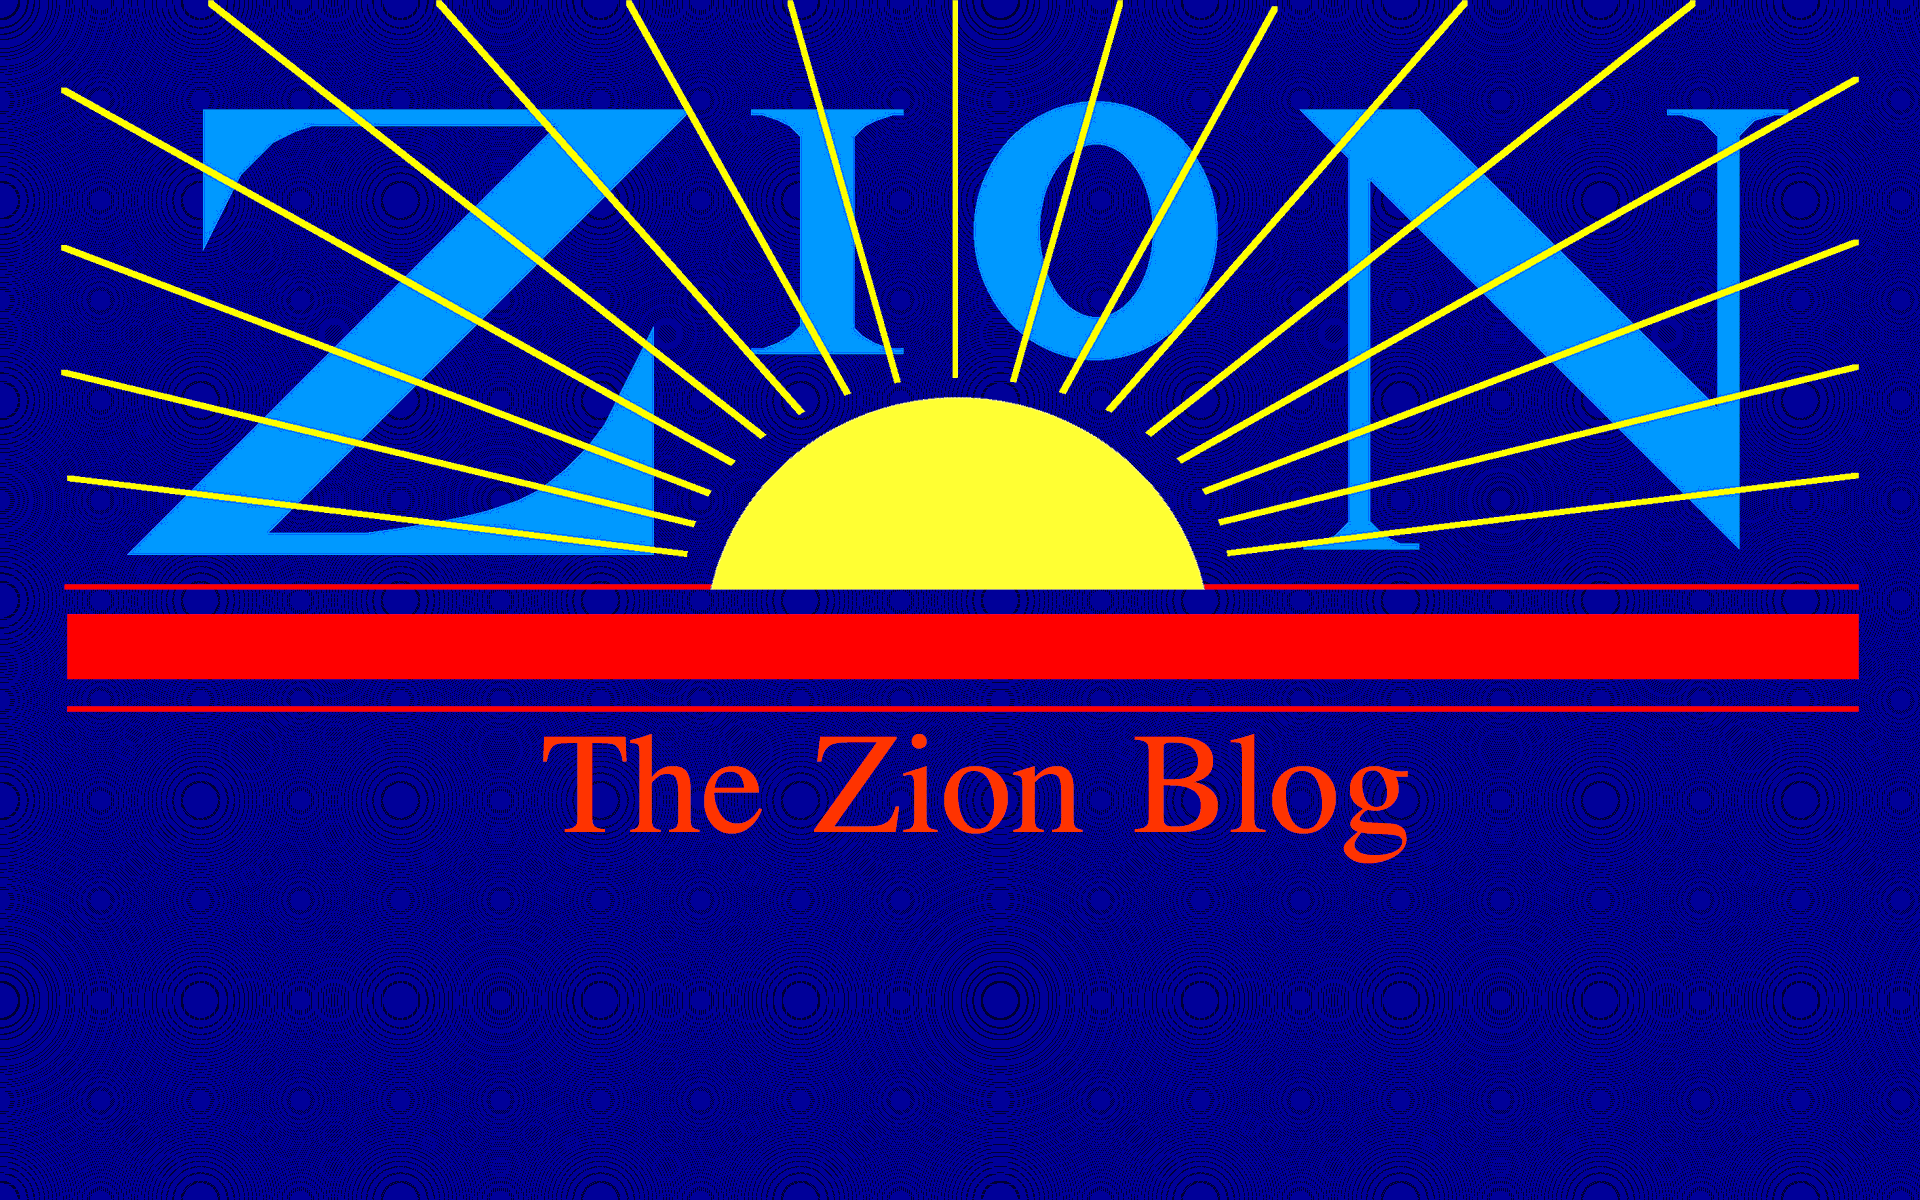 Jay Mackley LDS Zion blog